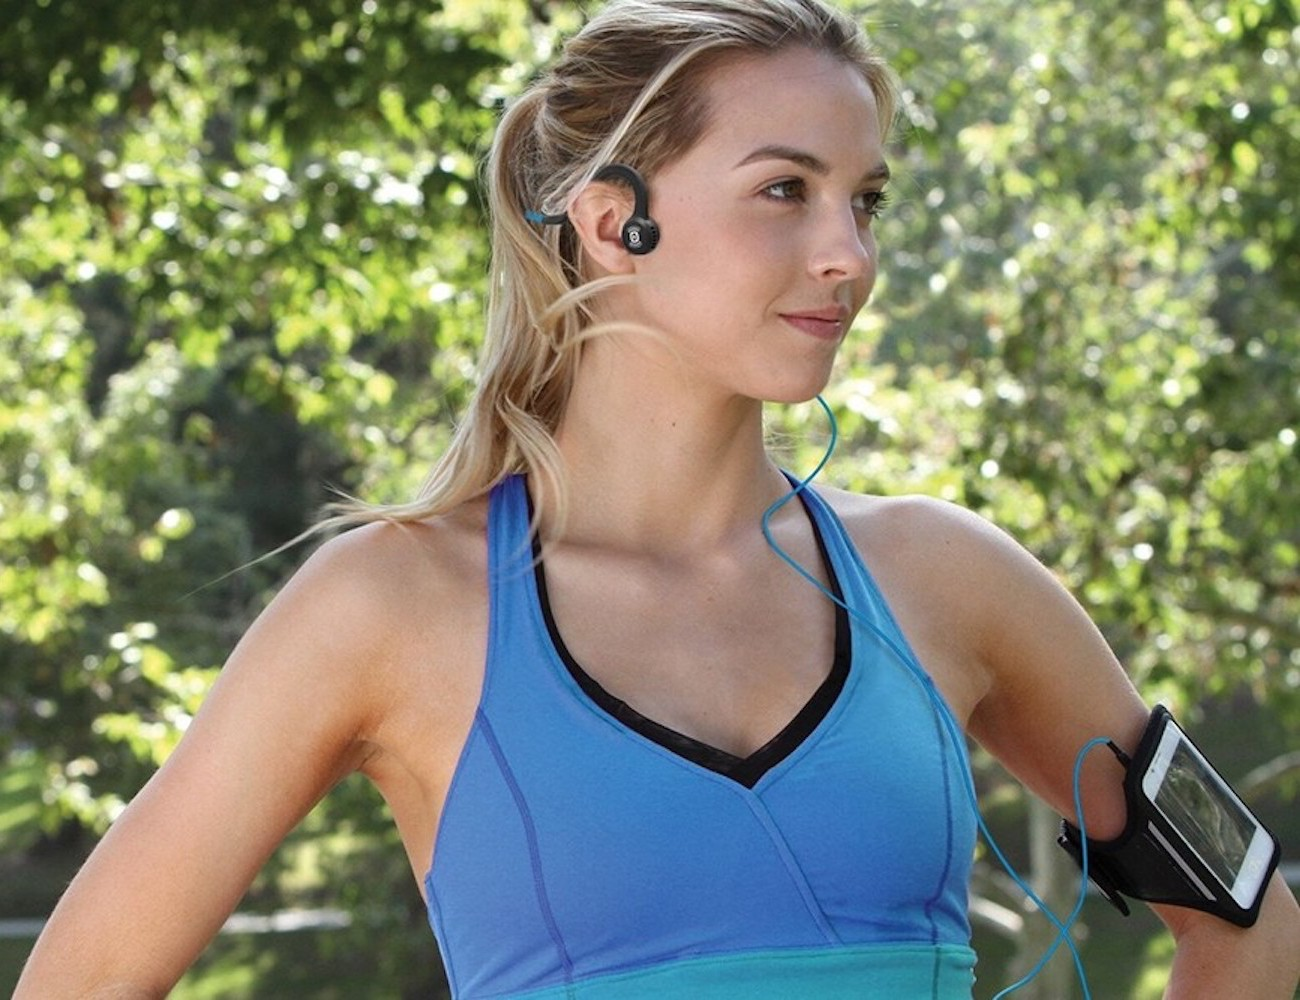 Aftershokz Sportz Titanium with Mic Wired Sport Headphones provide incredible sound